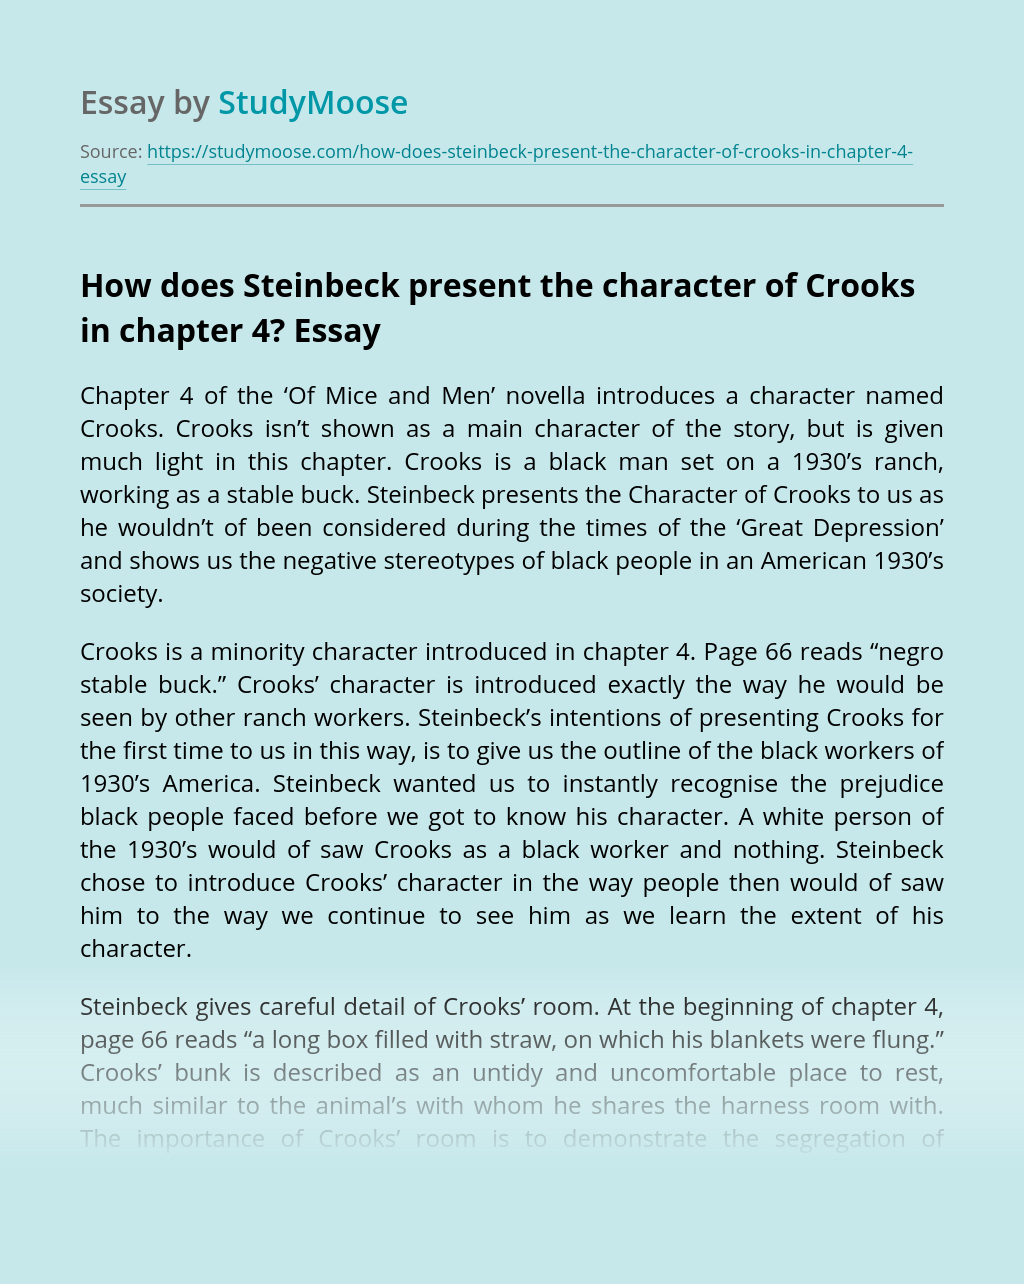 How does Steinbeck present the character of Crooks in chapter 4?